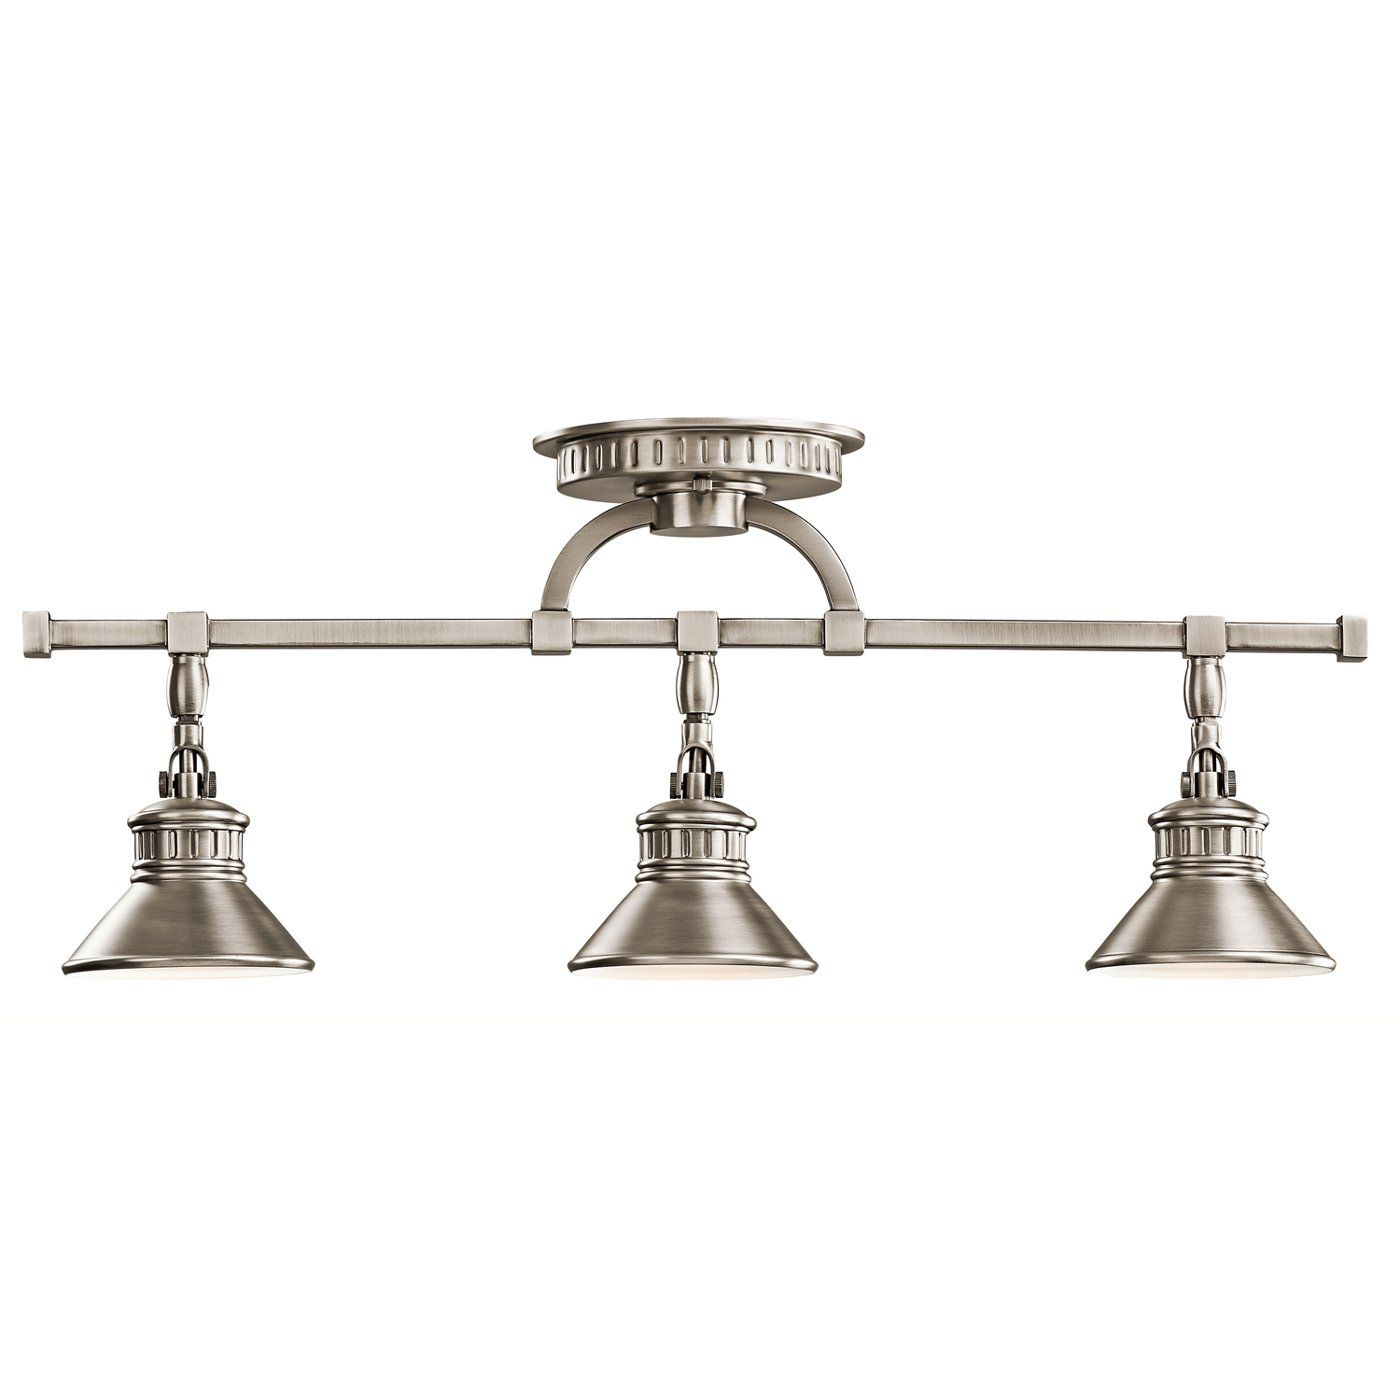 Kichler Lighting 42439 3 Light Sayre Directional Rail